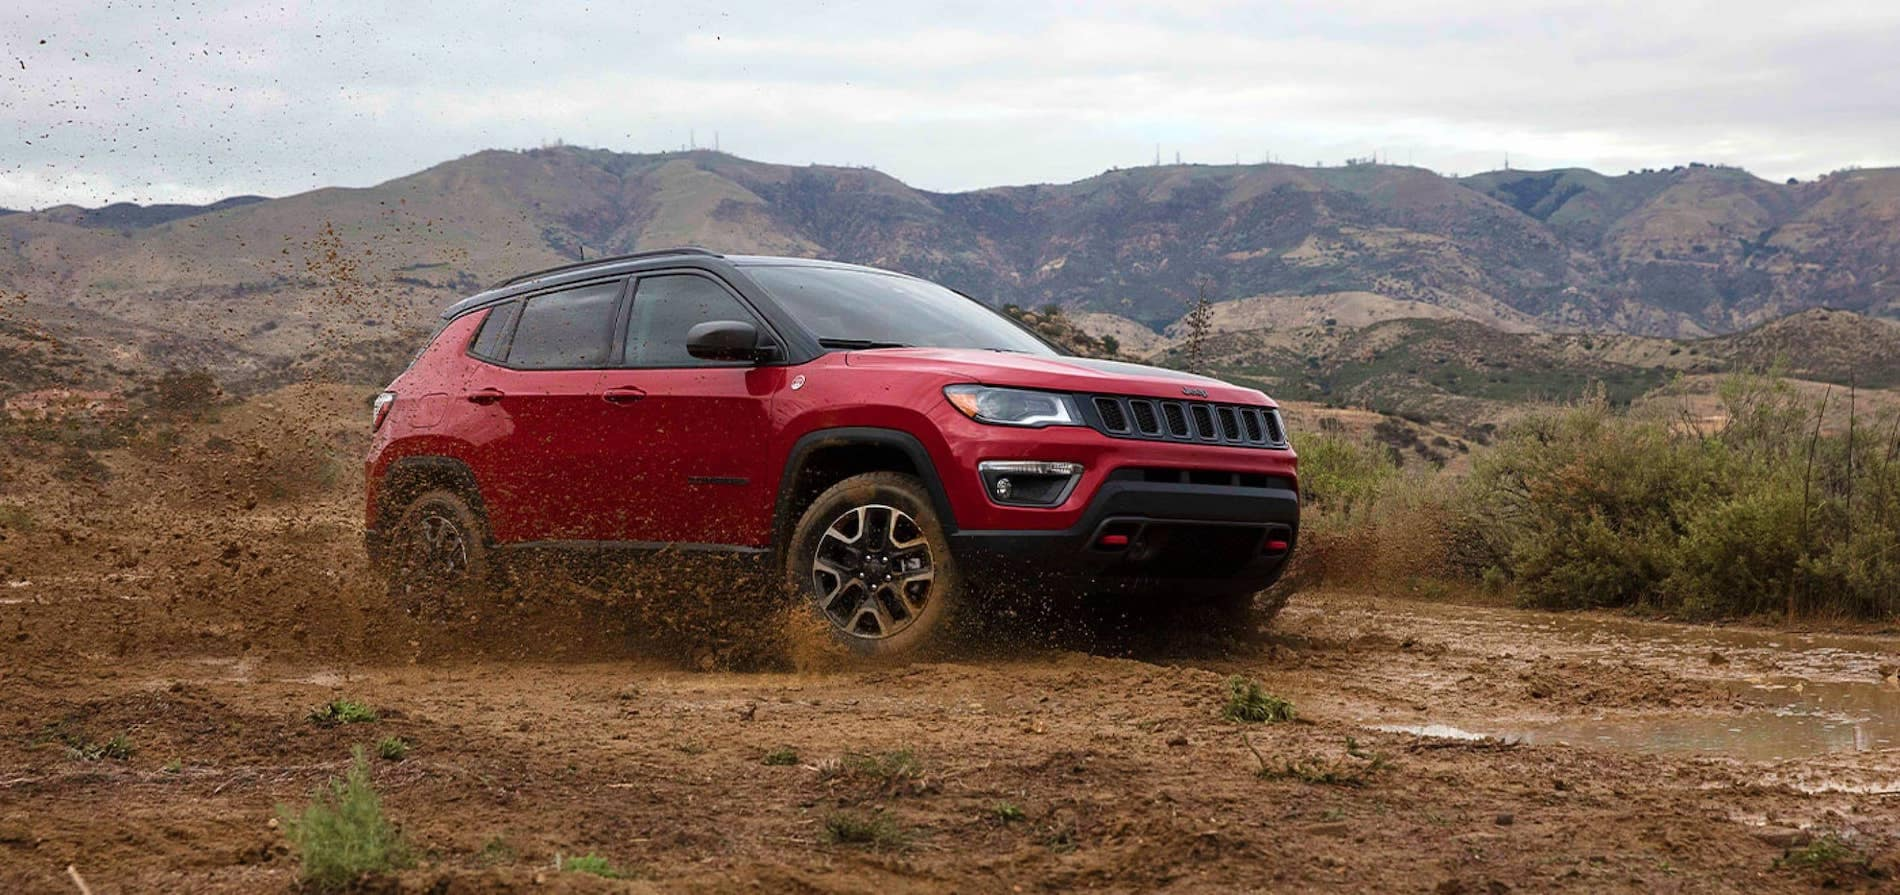 Jeep compass off-road capabilities in Salisbury MD